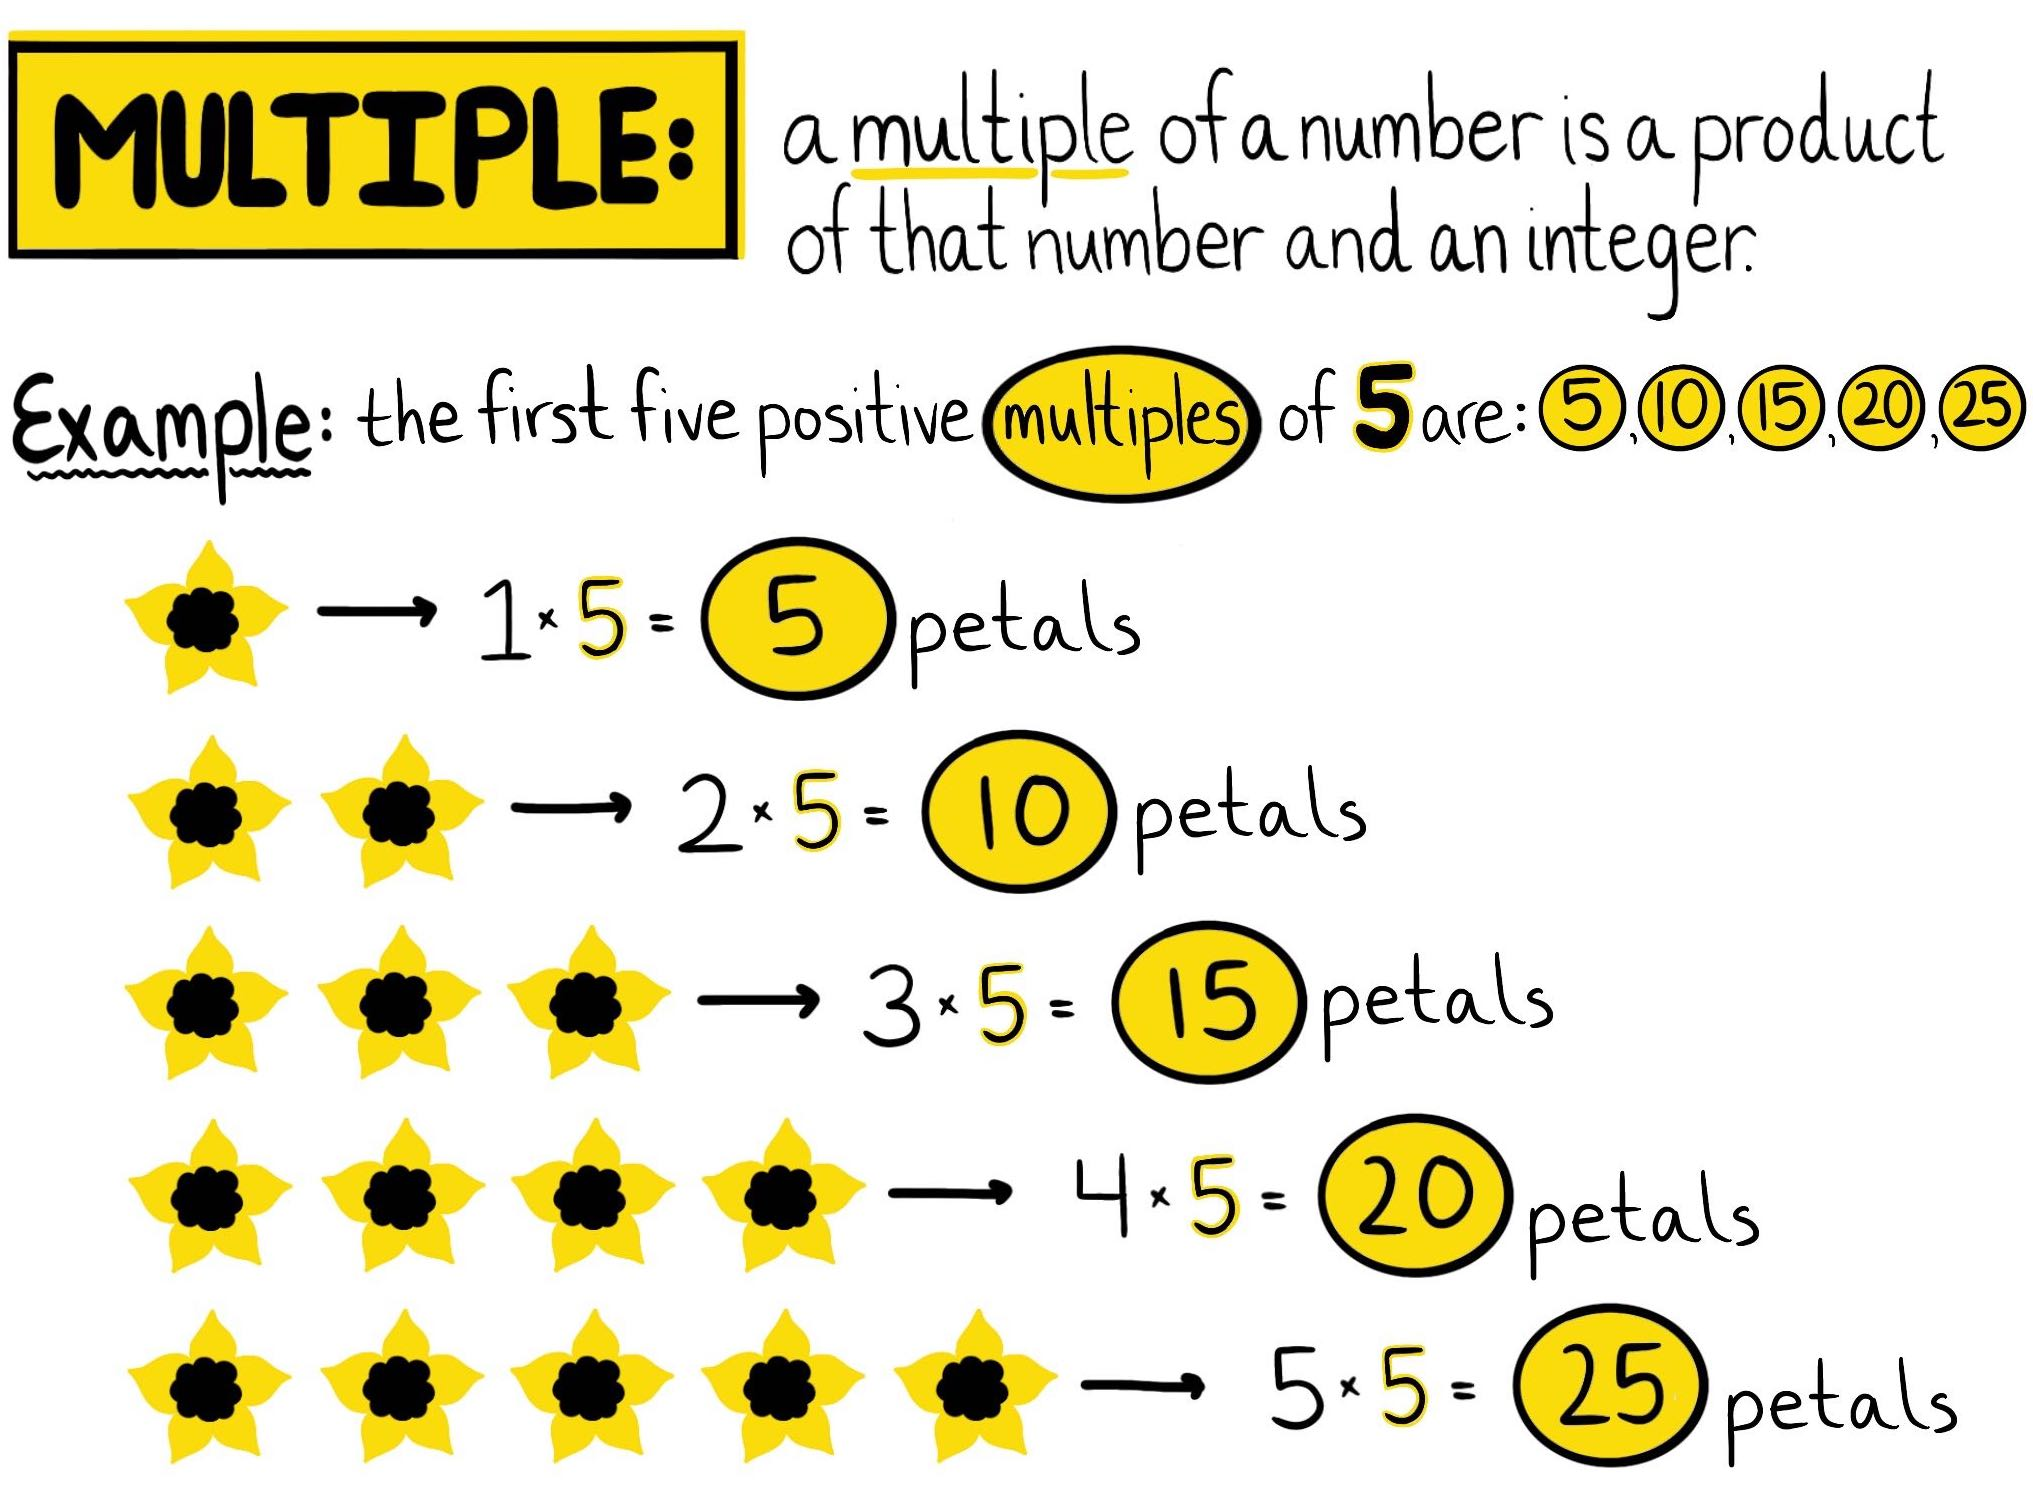 multiples_of_a_number.jpg